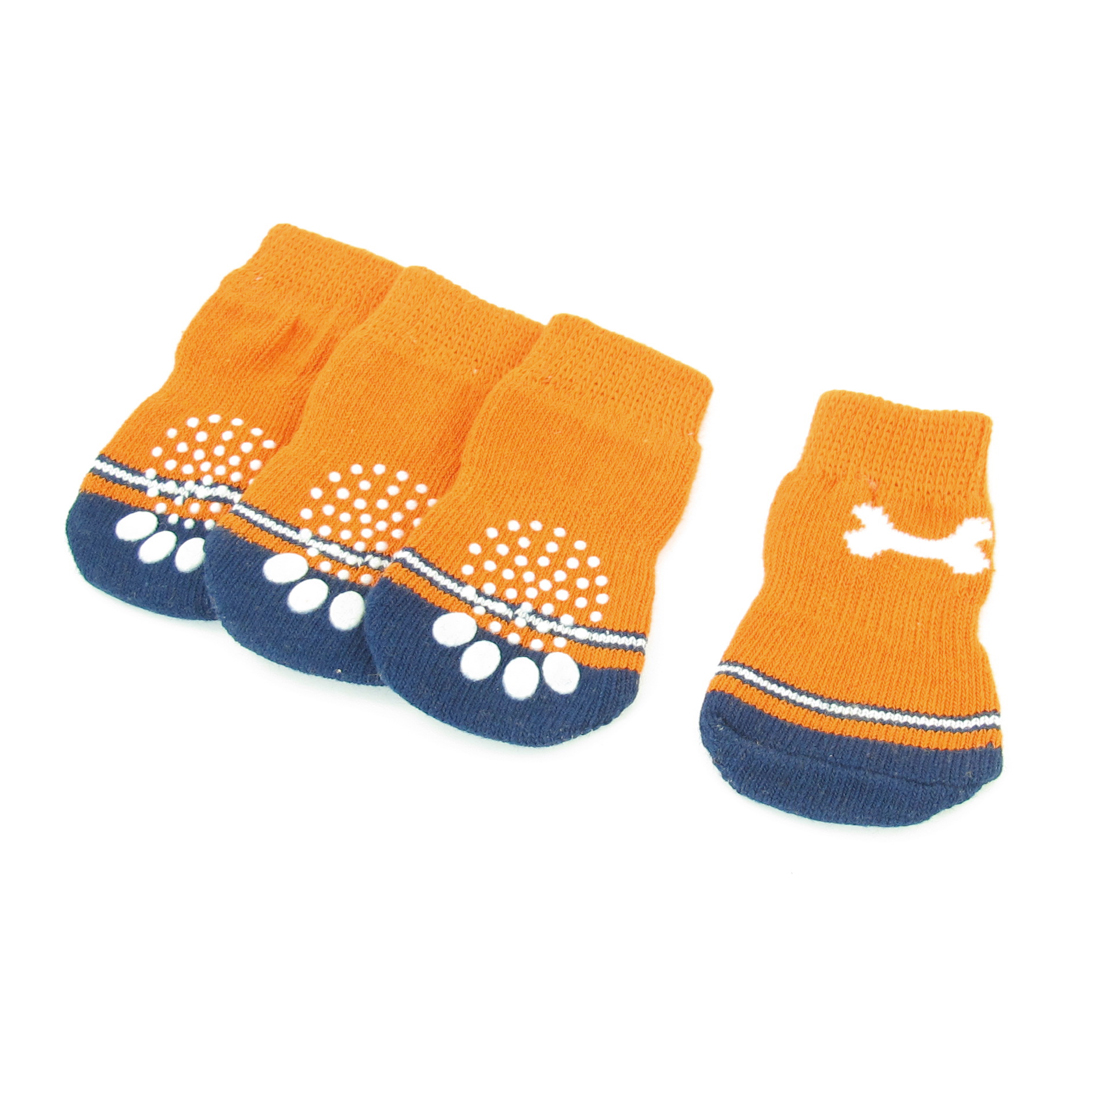 2 Pairs Bone Print Elastic Knitted Pet Dog Doggie Socks Navy Blue Orange Size L